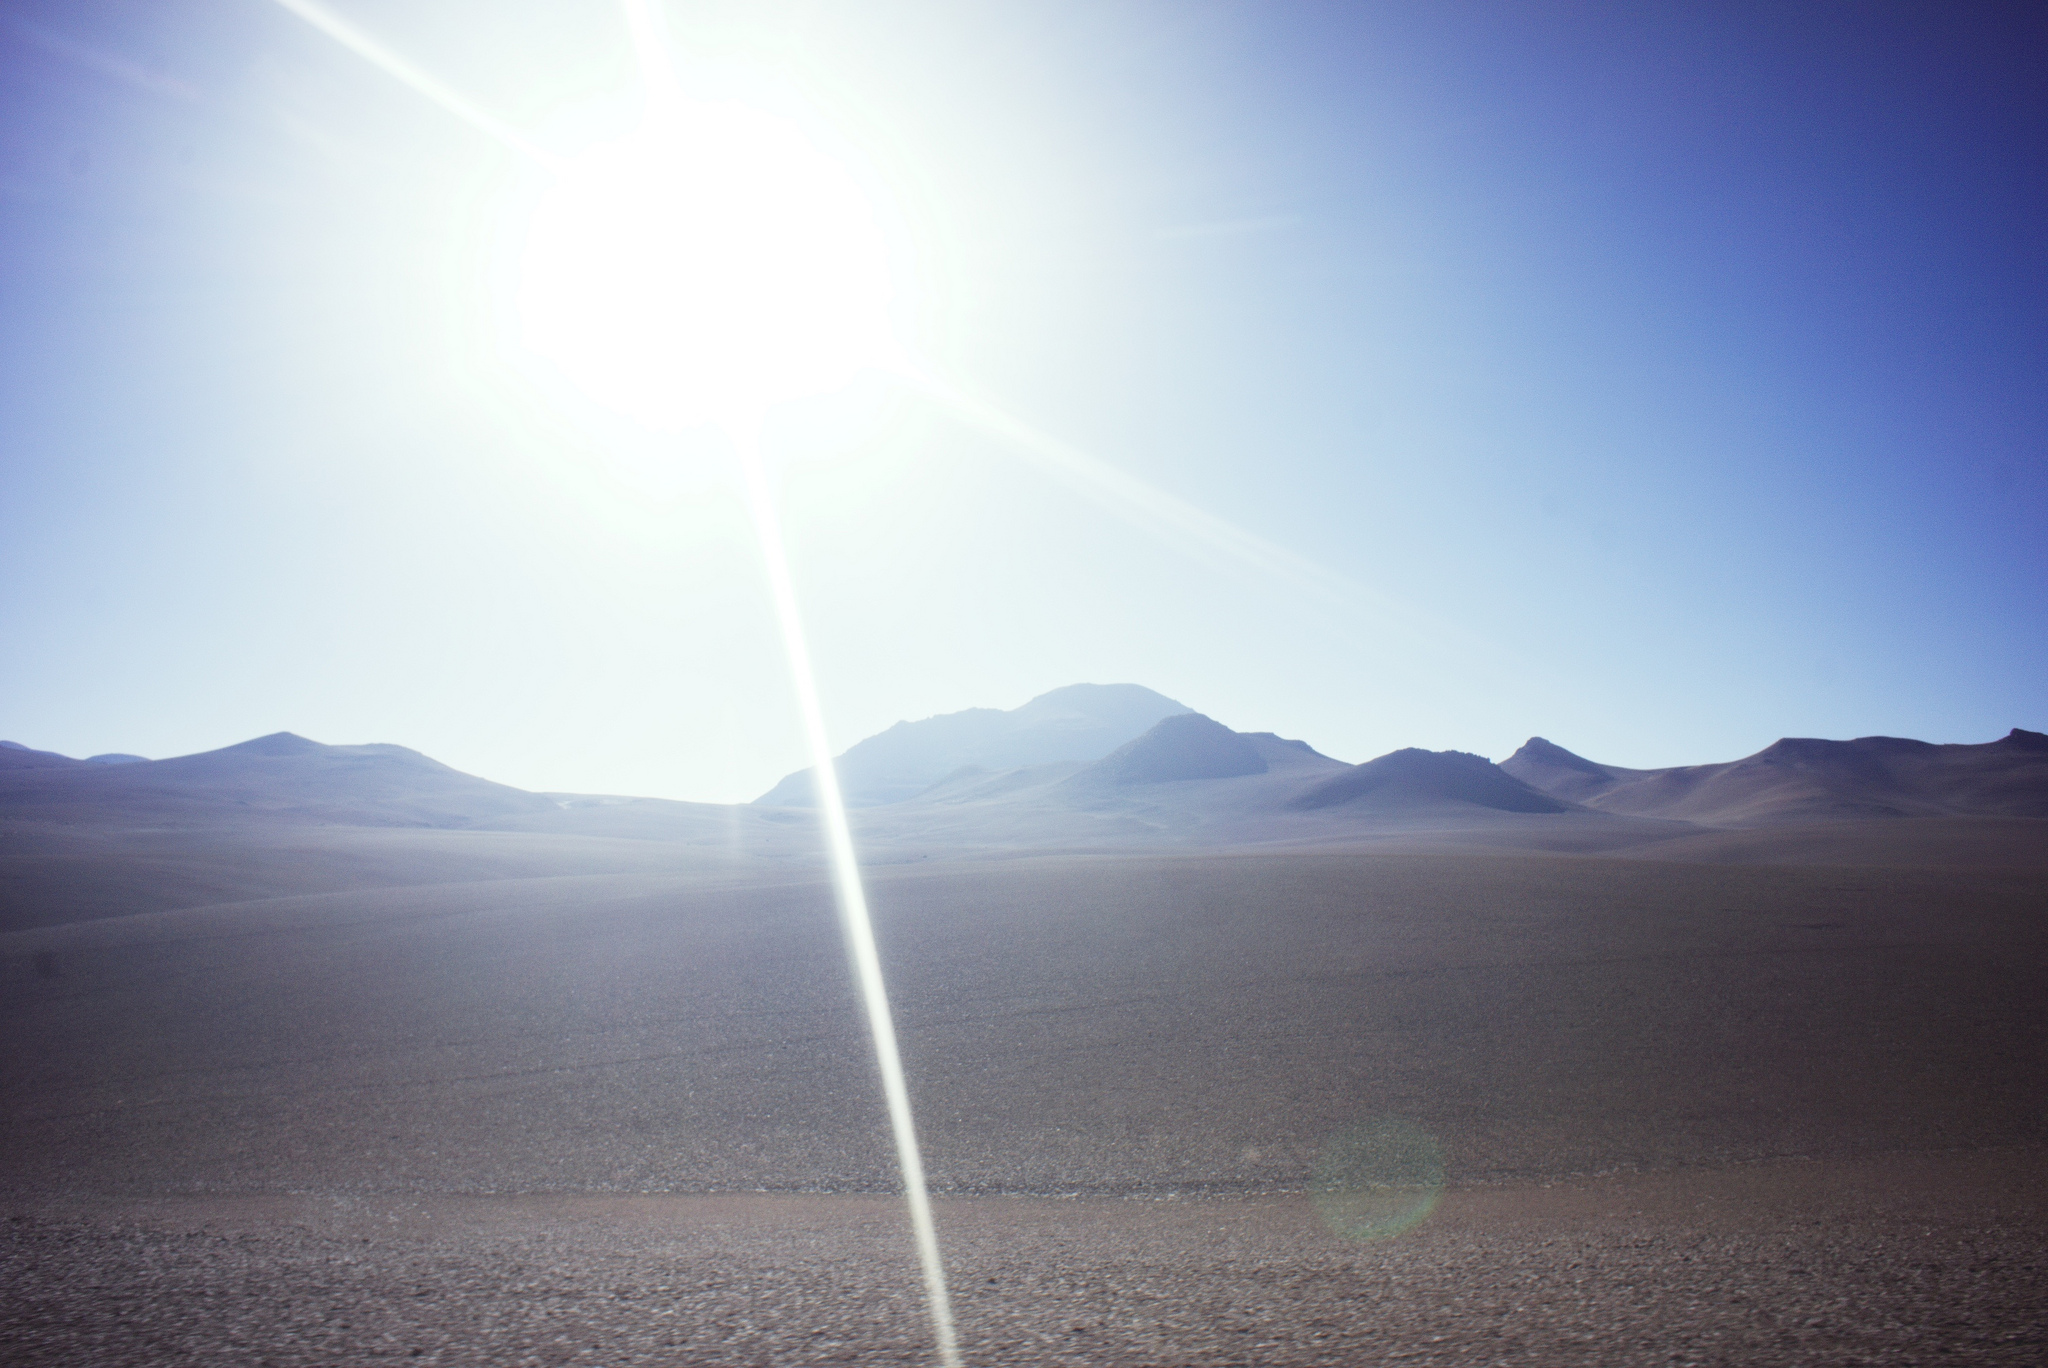 The high, flat Atacama desert has some of the most intense sun in the world.